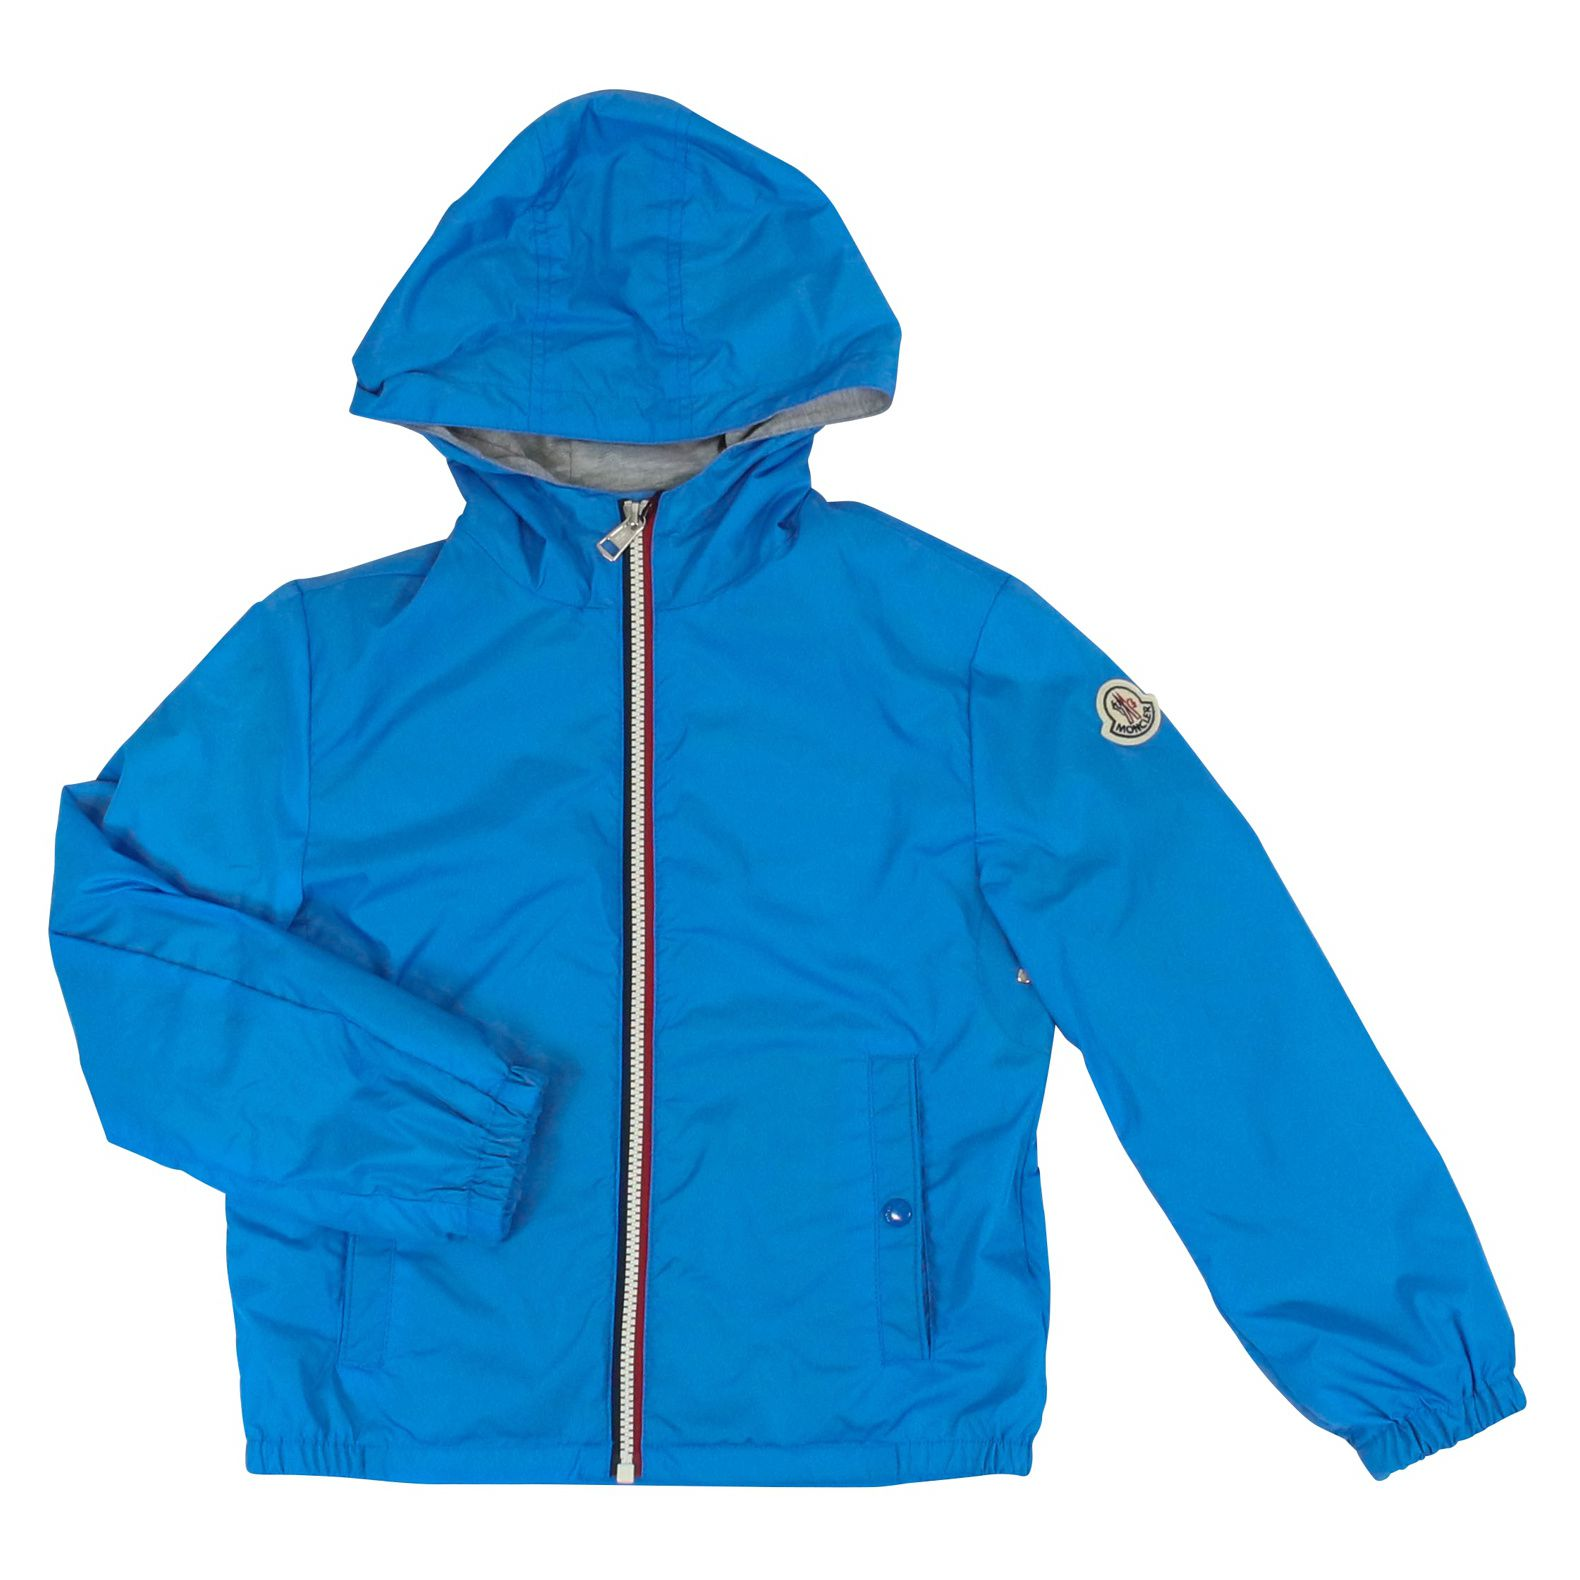 the latest 00a8c 5300c New Urville jacket